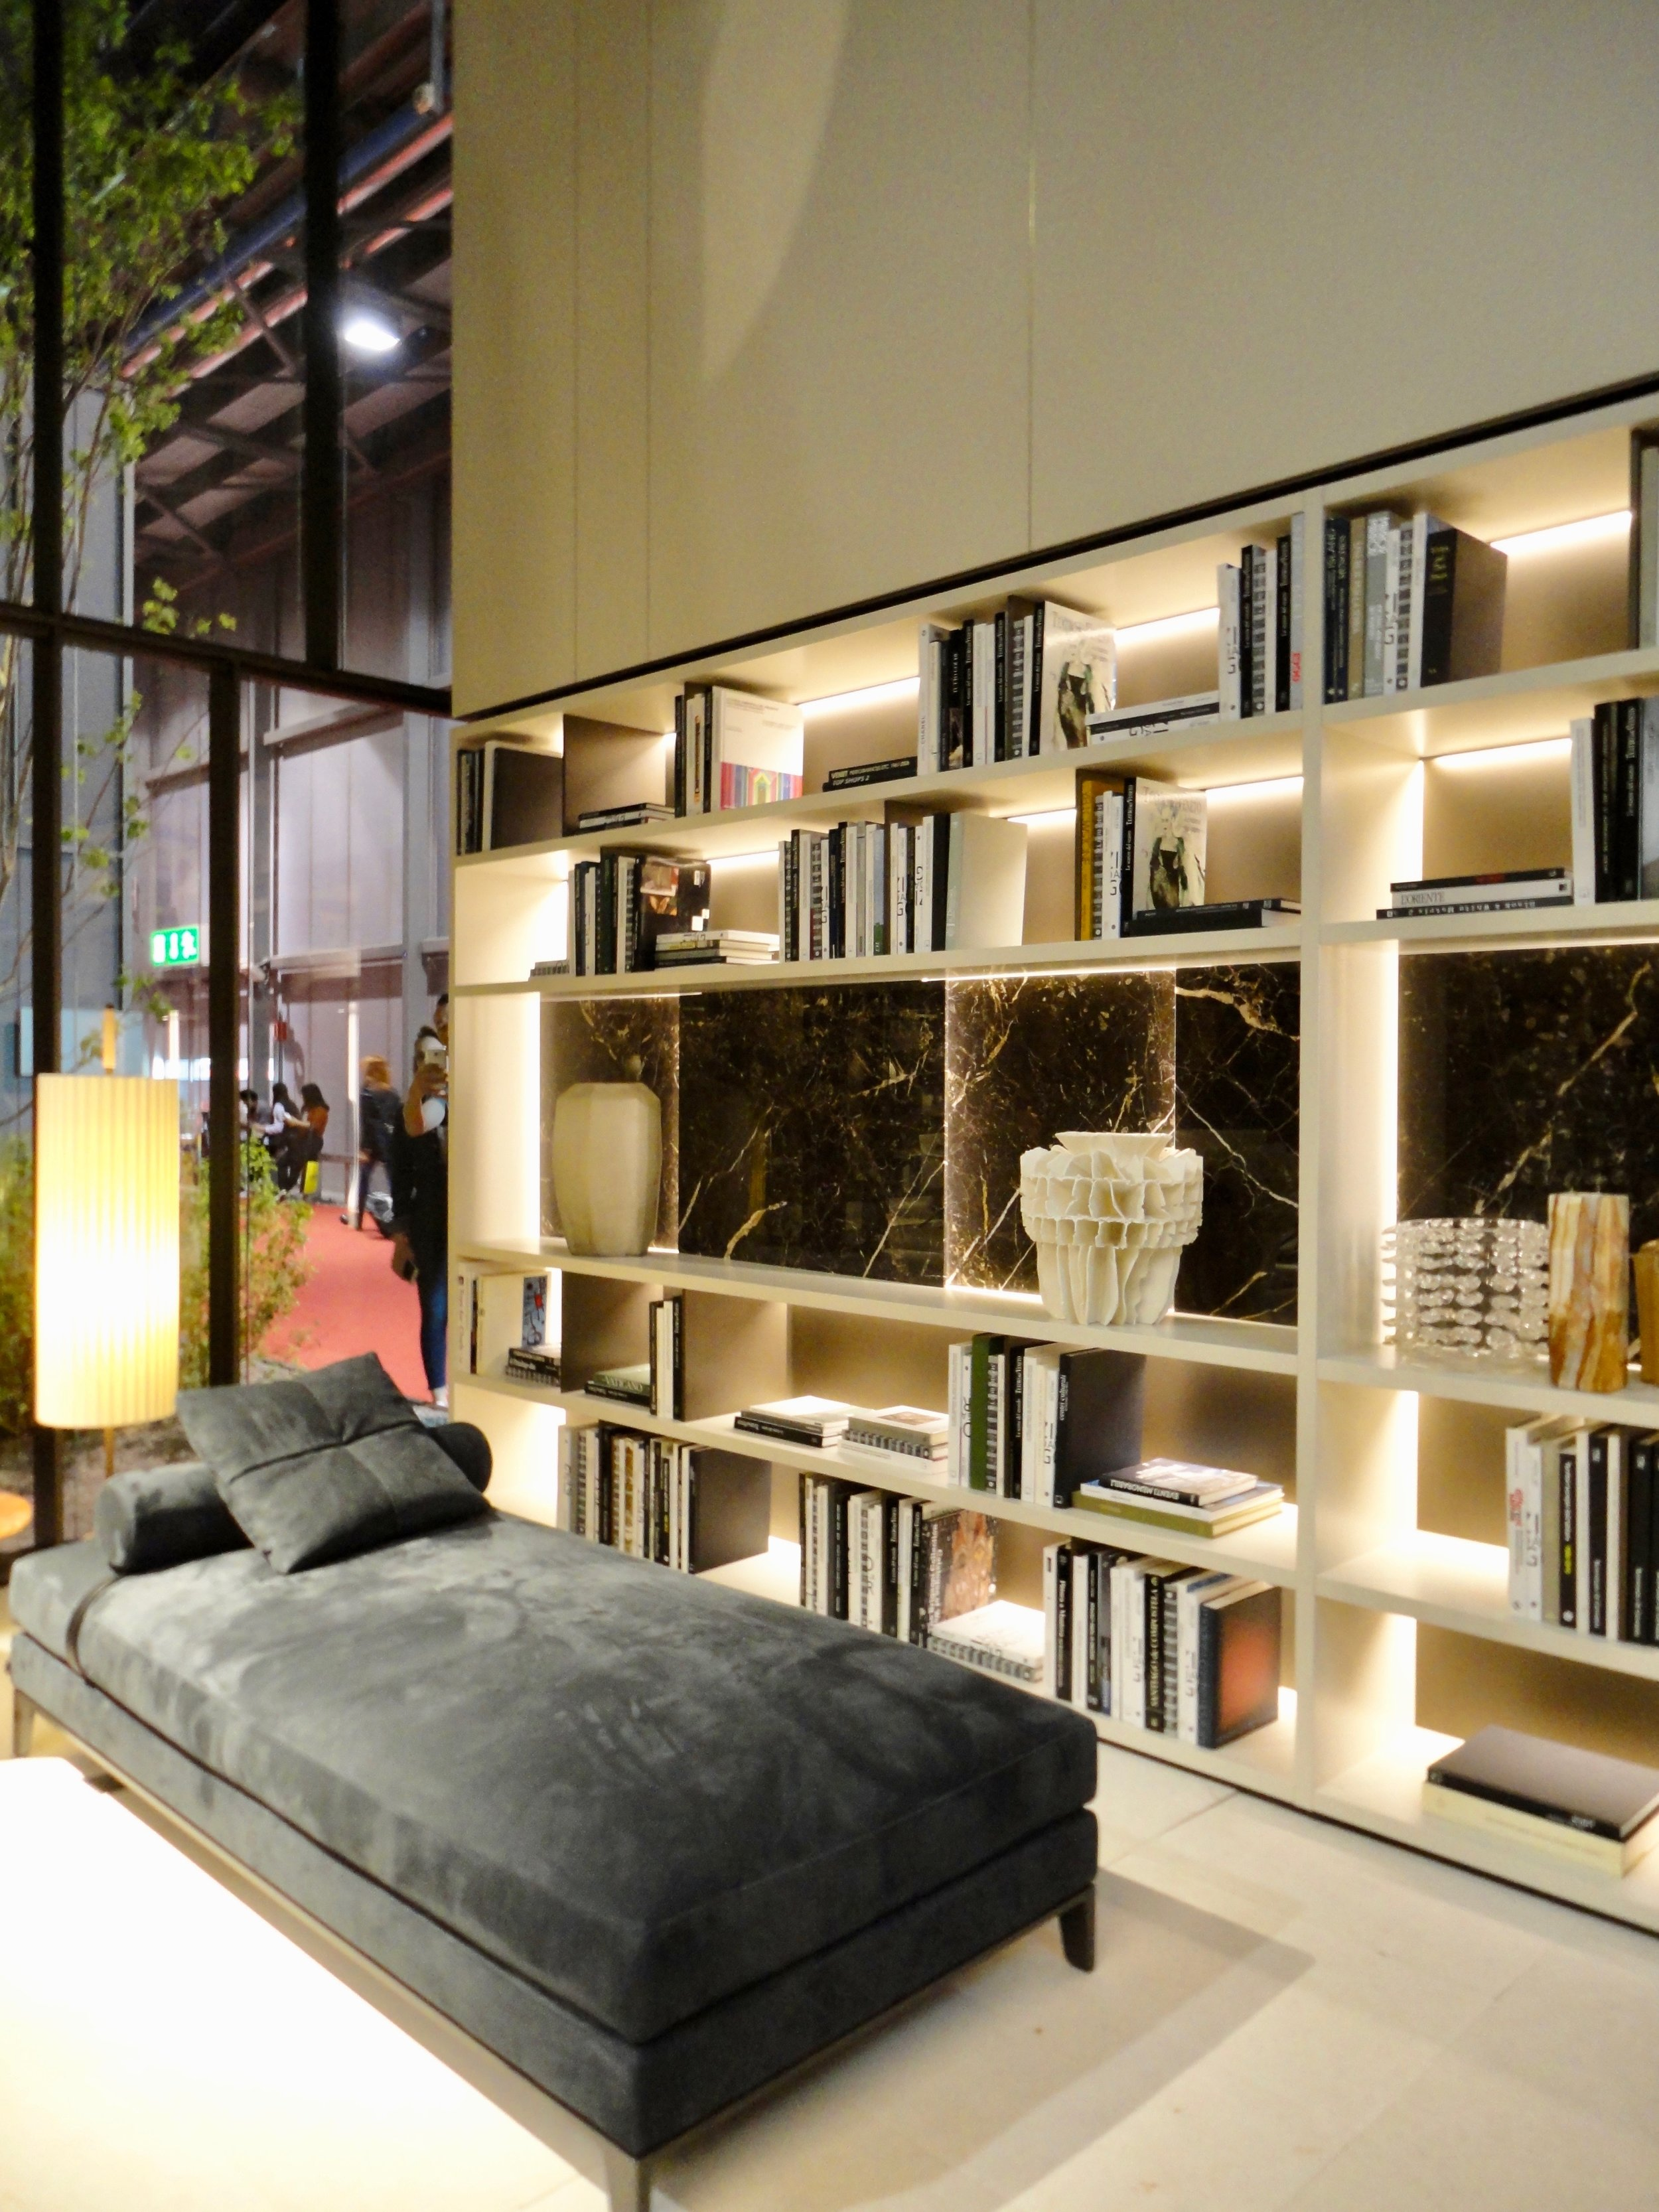 New 'Emperador' marble to Poliform's existing 'Wall' storage system